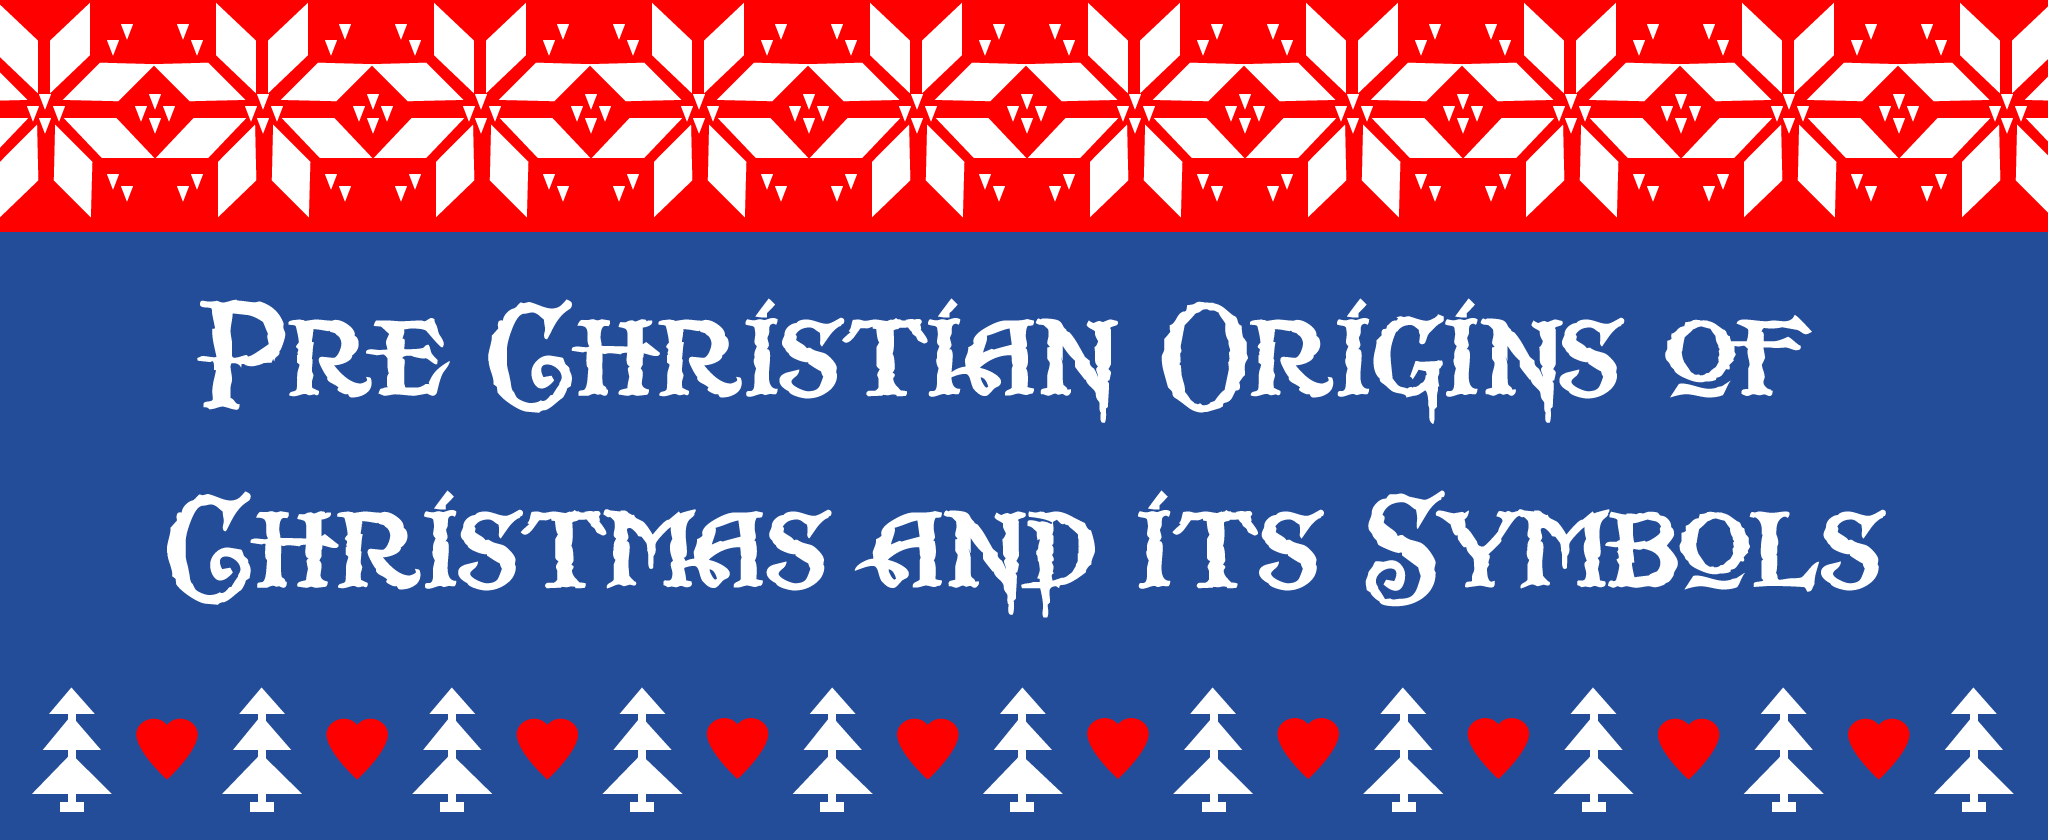 How gift giving at christmas started as a pagan